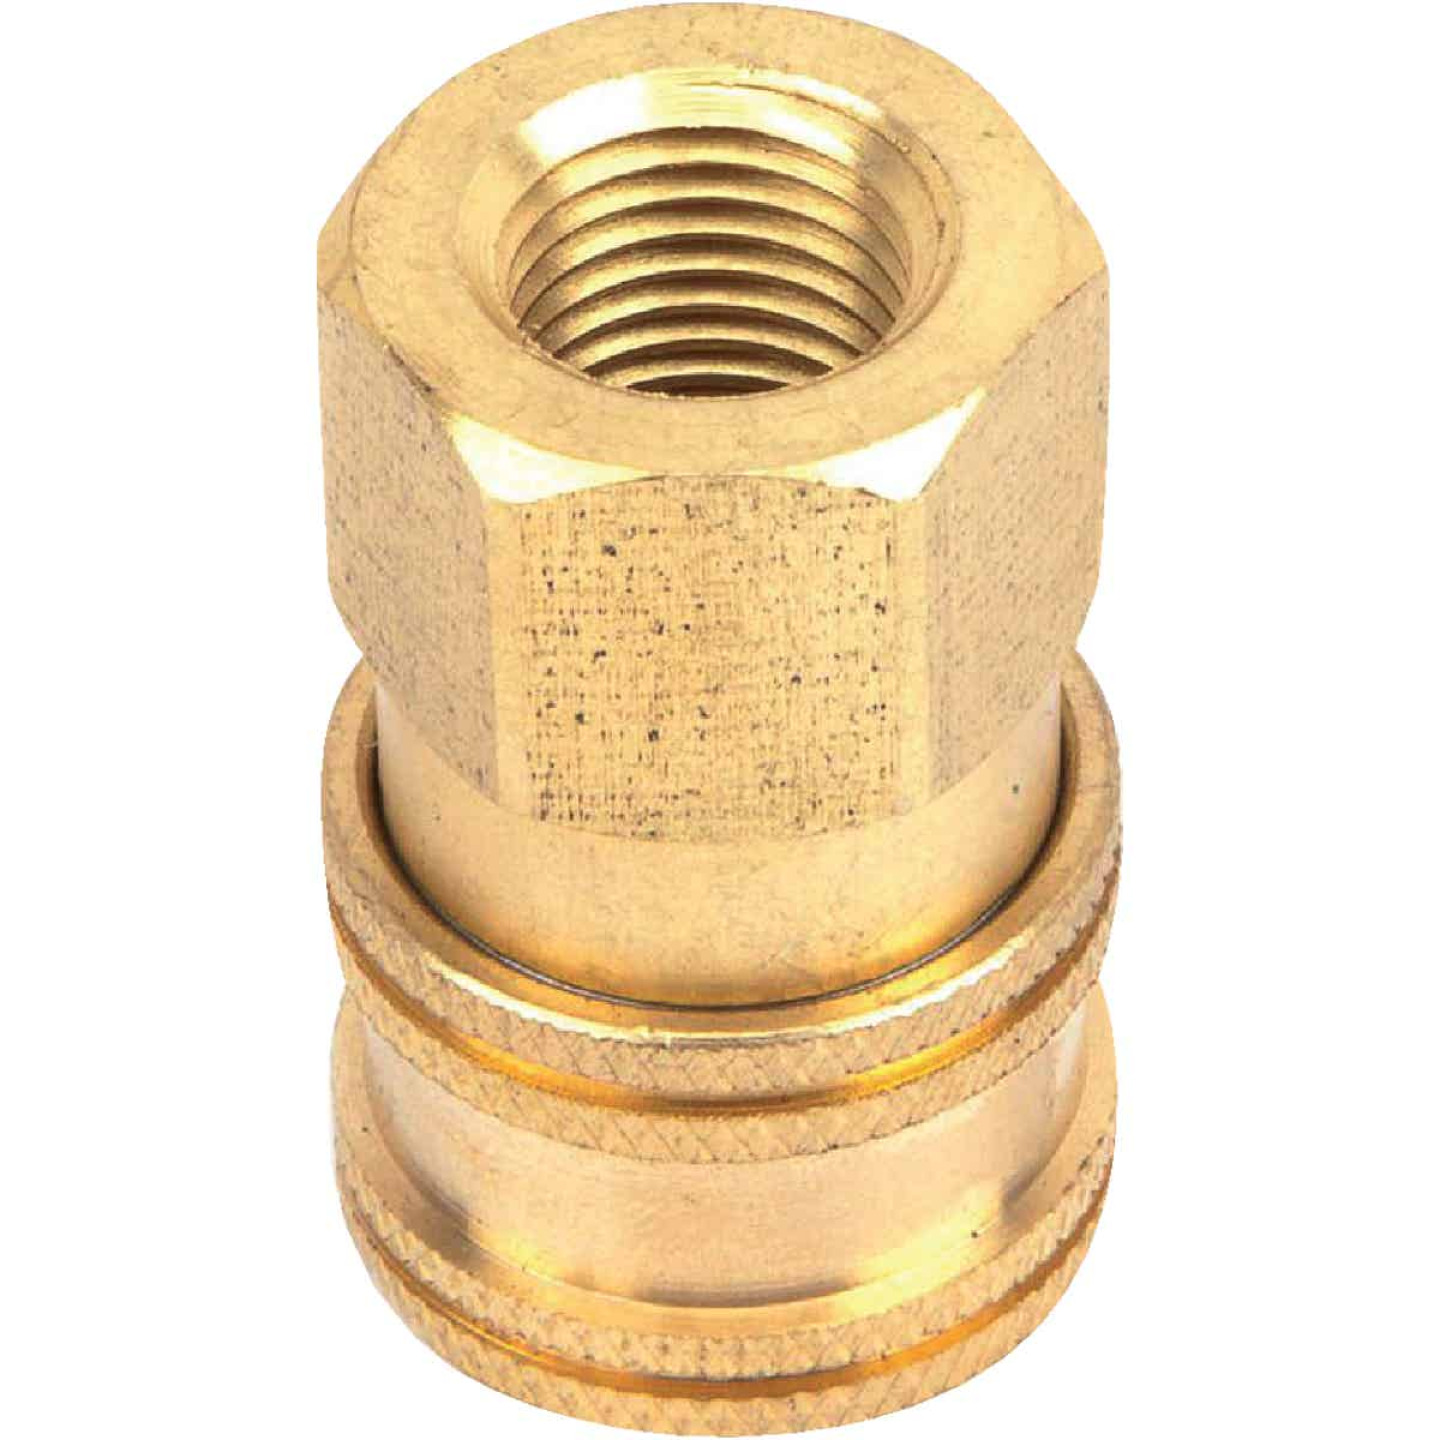 Forney 1/4 In. Female Quick Coupler Pressure Washer Socket Image 3